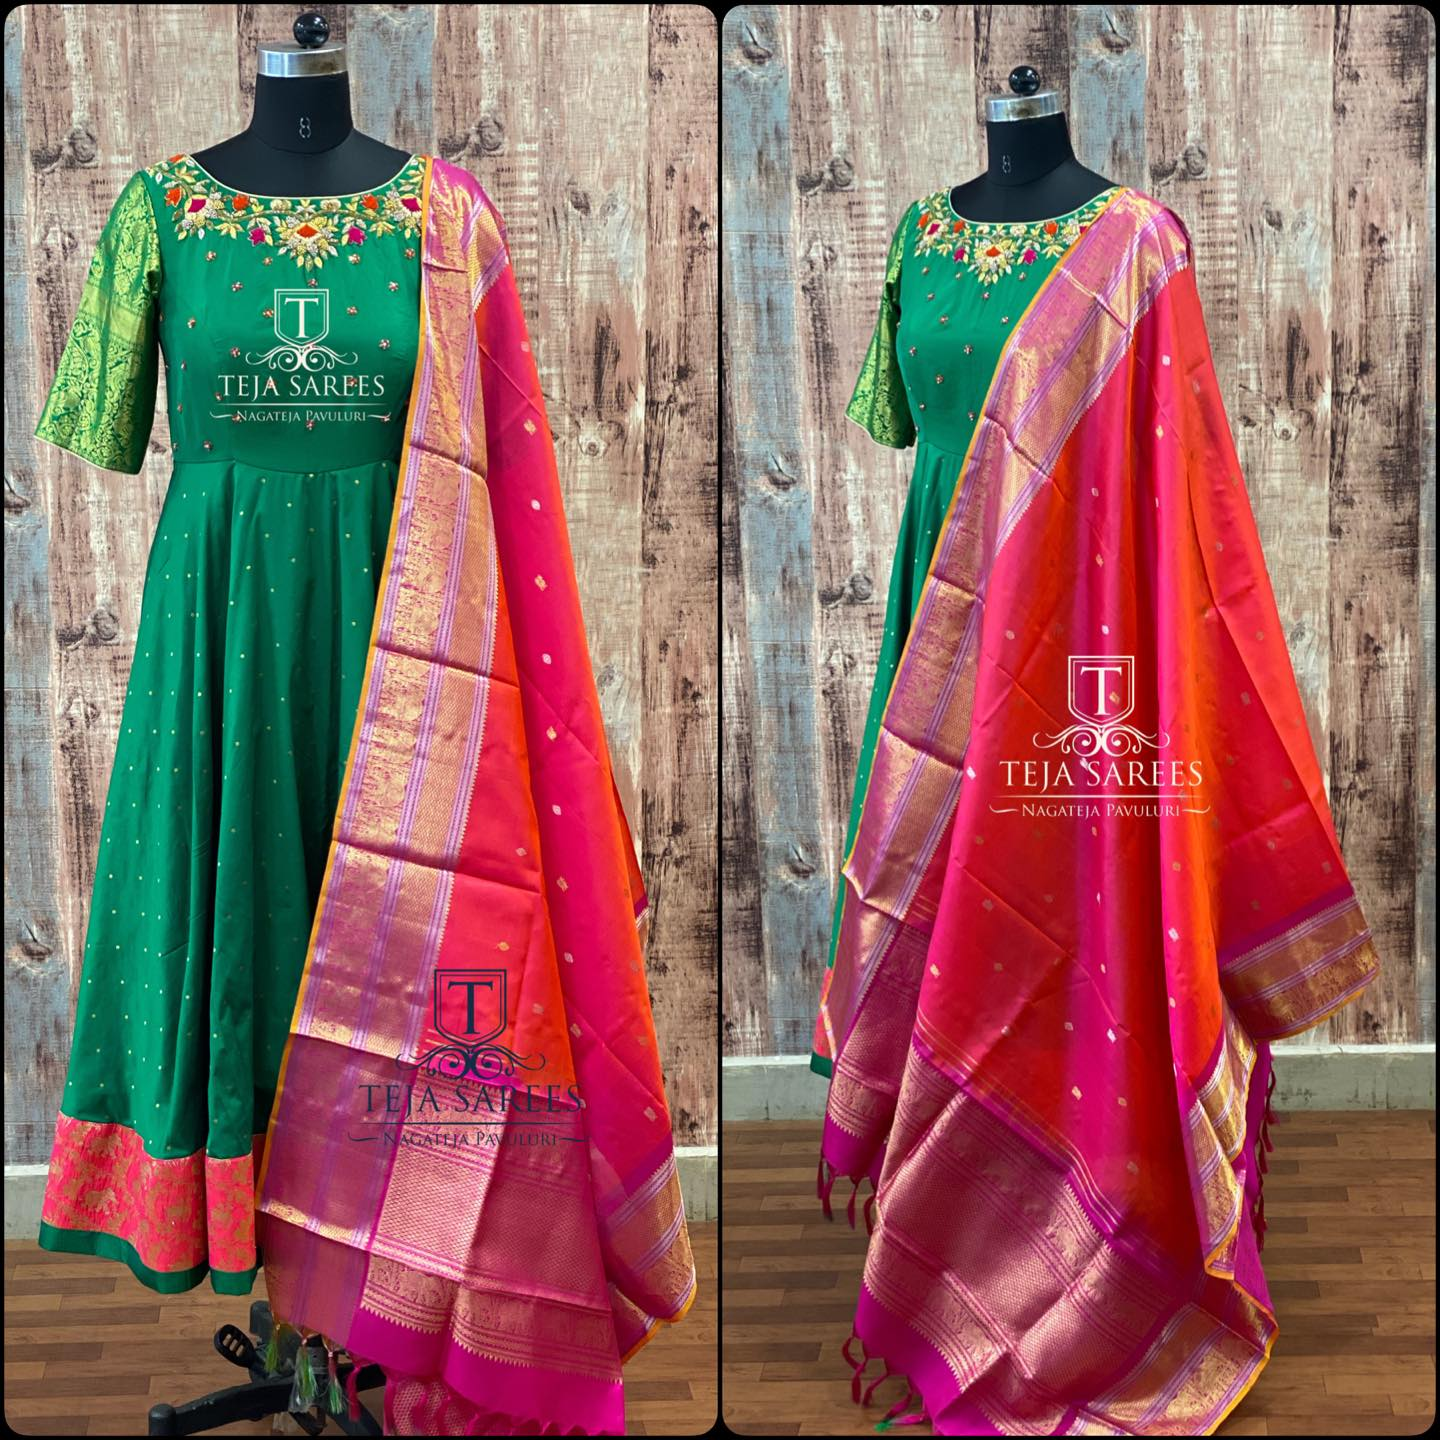 TS-DS- 706. Available. Beautiful green color floor length anarkali dress with kanchi pattu dupatta. Anarkali dress with hand embroidery work on yoke.  For orders/queries Call/ what's app  on 8341382382 or Mail  tejasarees@yahoo.com. 2021-01-20